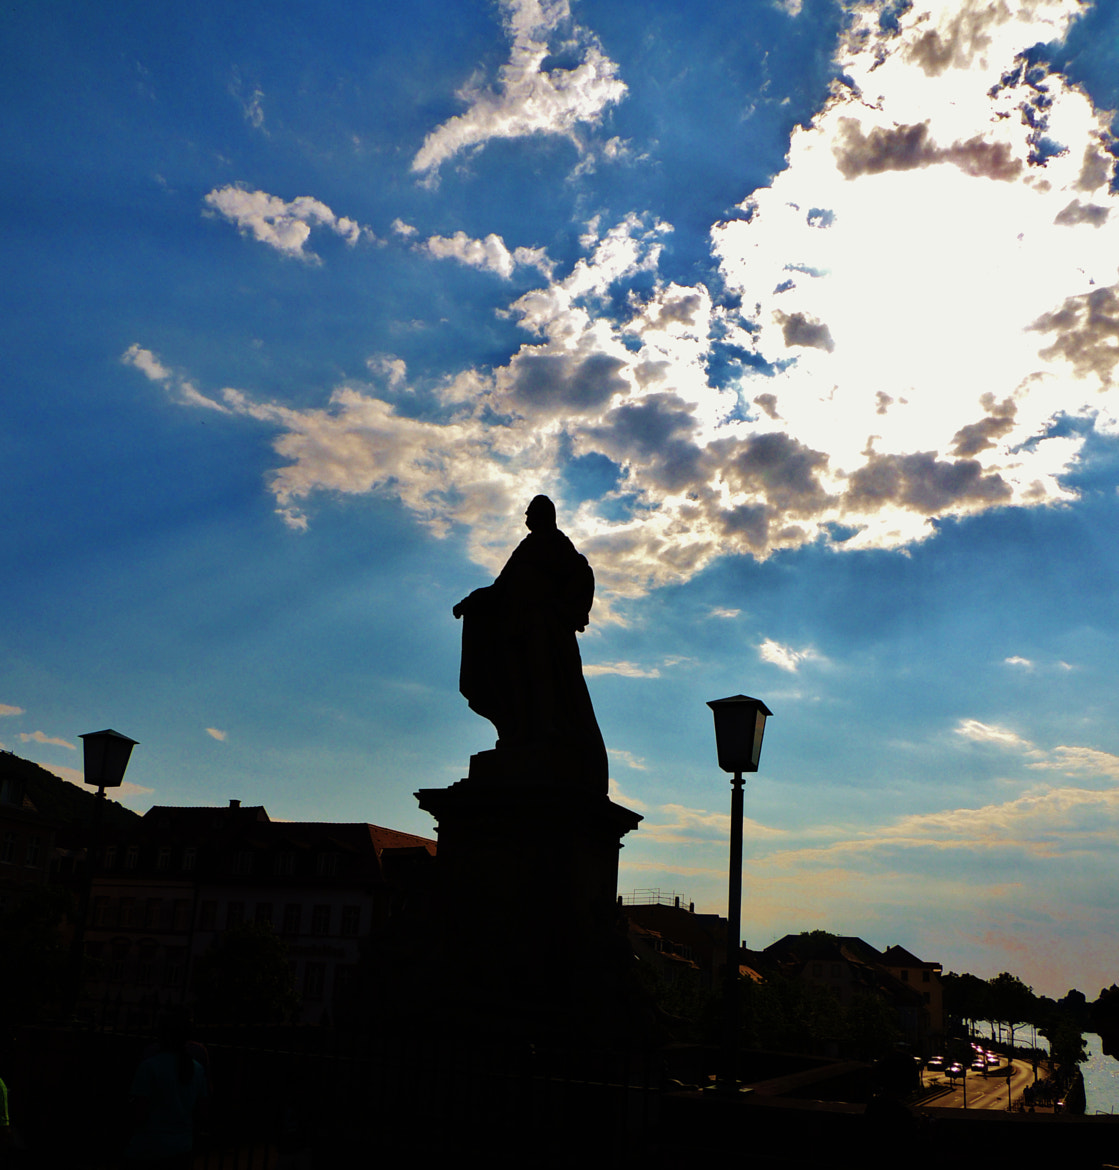 Photograph Silhouette of a statue and the evening sun. by Ravi S R on 500px